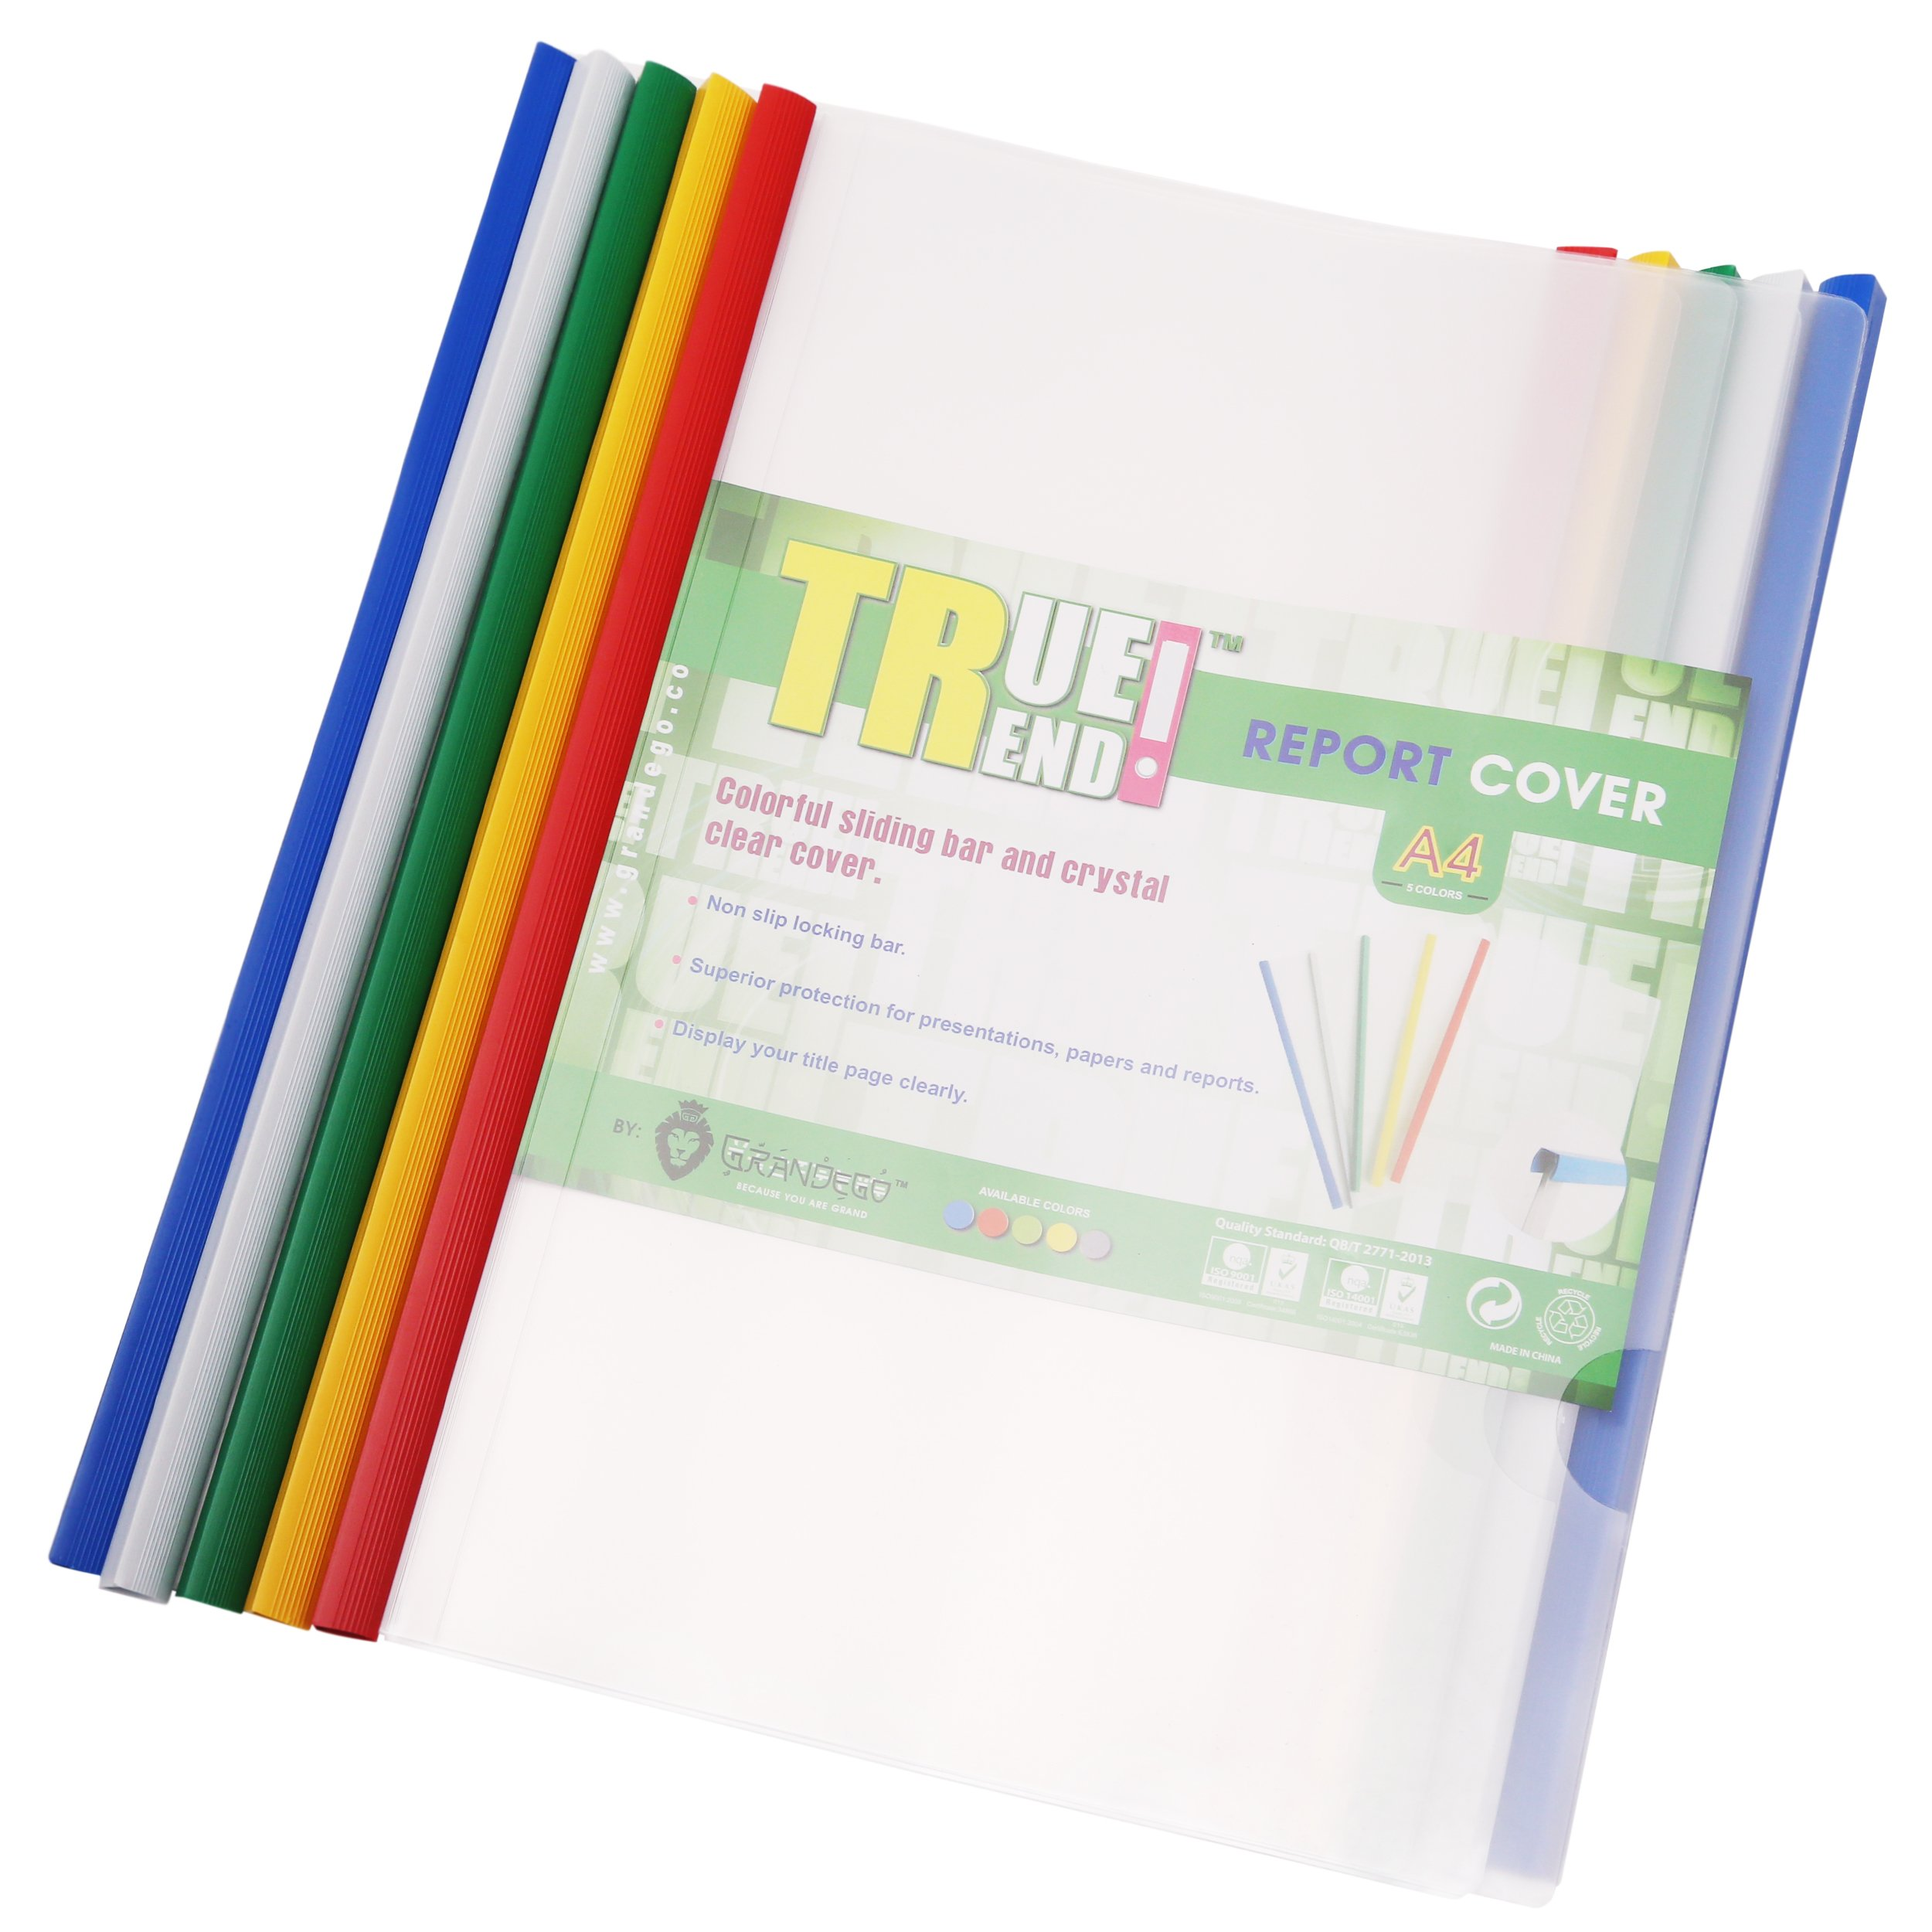 TRUETREND Clear Plastic Report Cover   Standard Sliding Bar Crystal Clear Design – Project File, Resume and Presentation Protector – Perfect for School and Office + Bulk Pack of 10 + 5 assorted colors